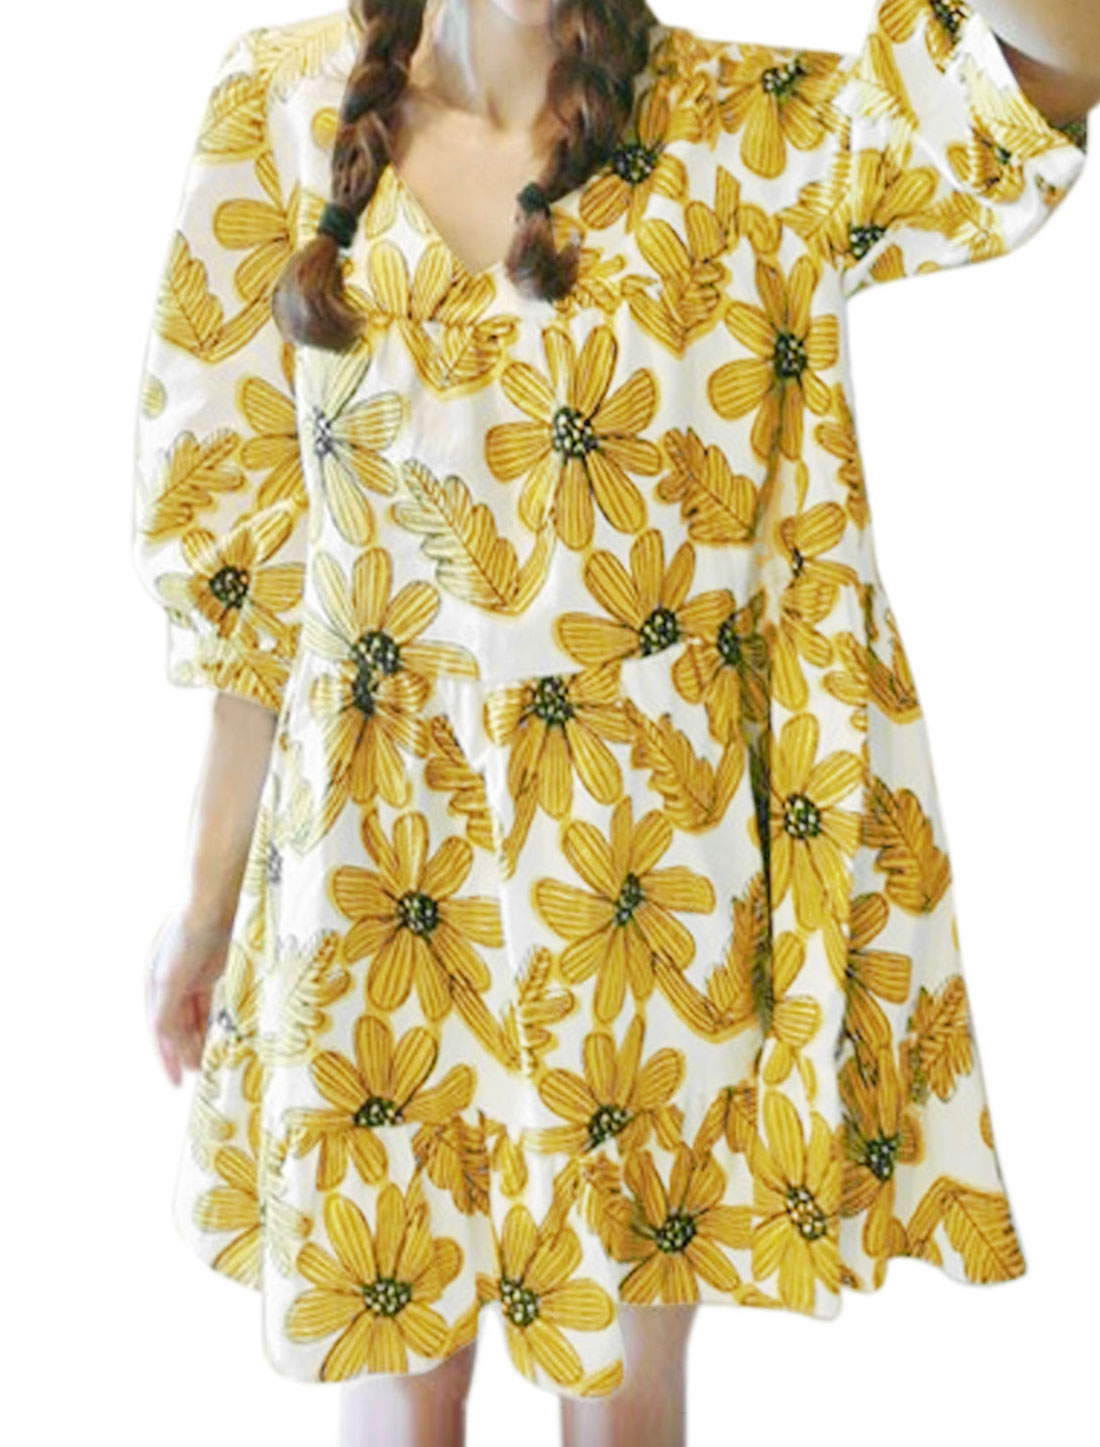 Women V Neck 3/4 Sleeve Floral Prints Casual Tunic Dress Yellow M